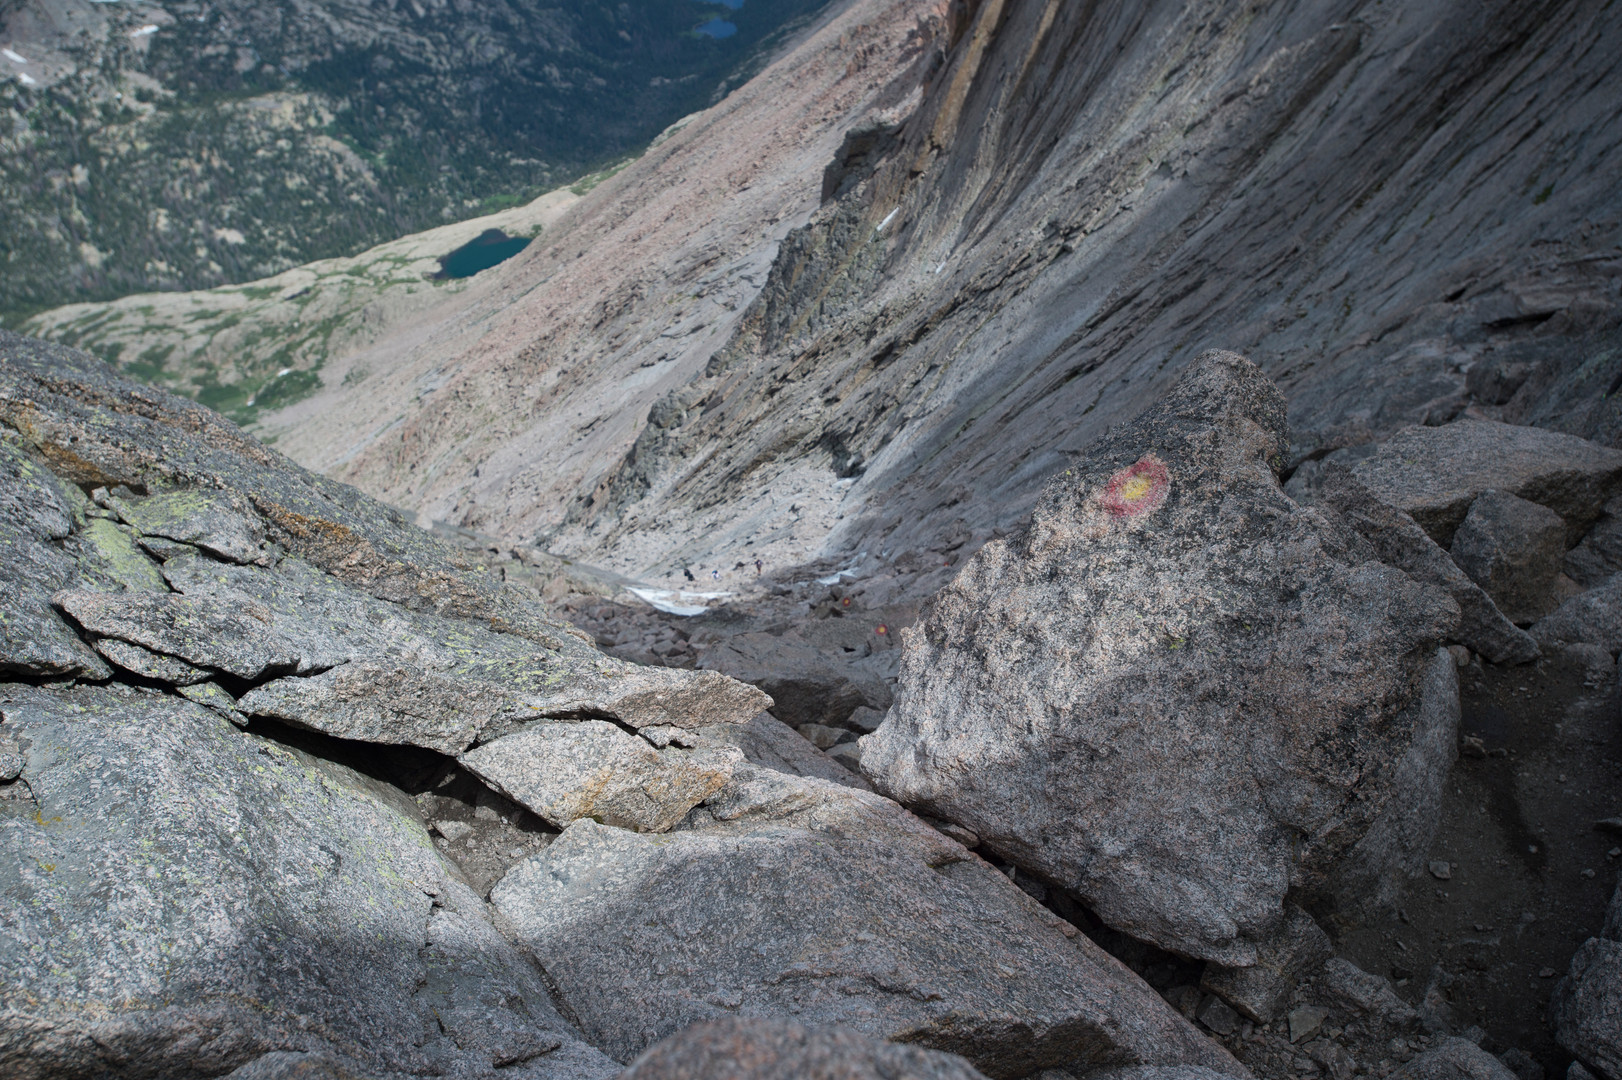 """A bullseye marks the route through """"The Trough"""" on Longs Peak in Rocky Mountain National Park on Friday, July 19, 2017. The trough, comprised of loose rock and gravel, tops out around 13,850 feet in elevation on the route."""